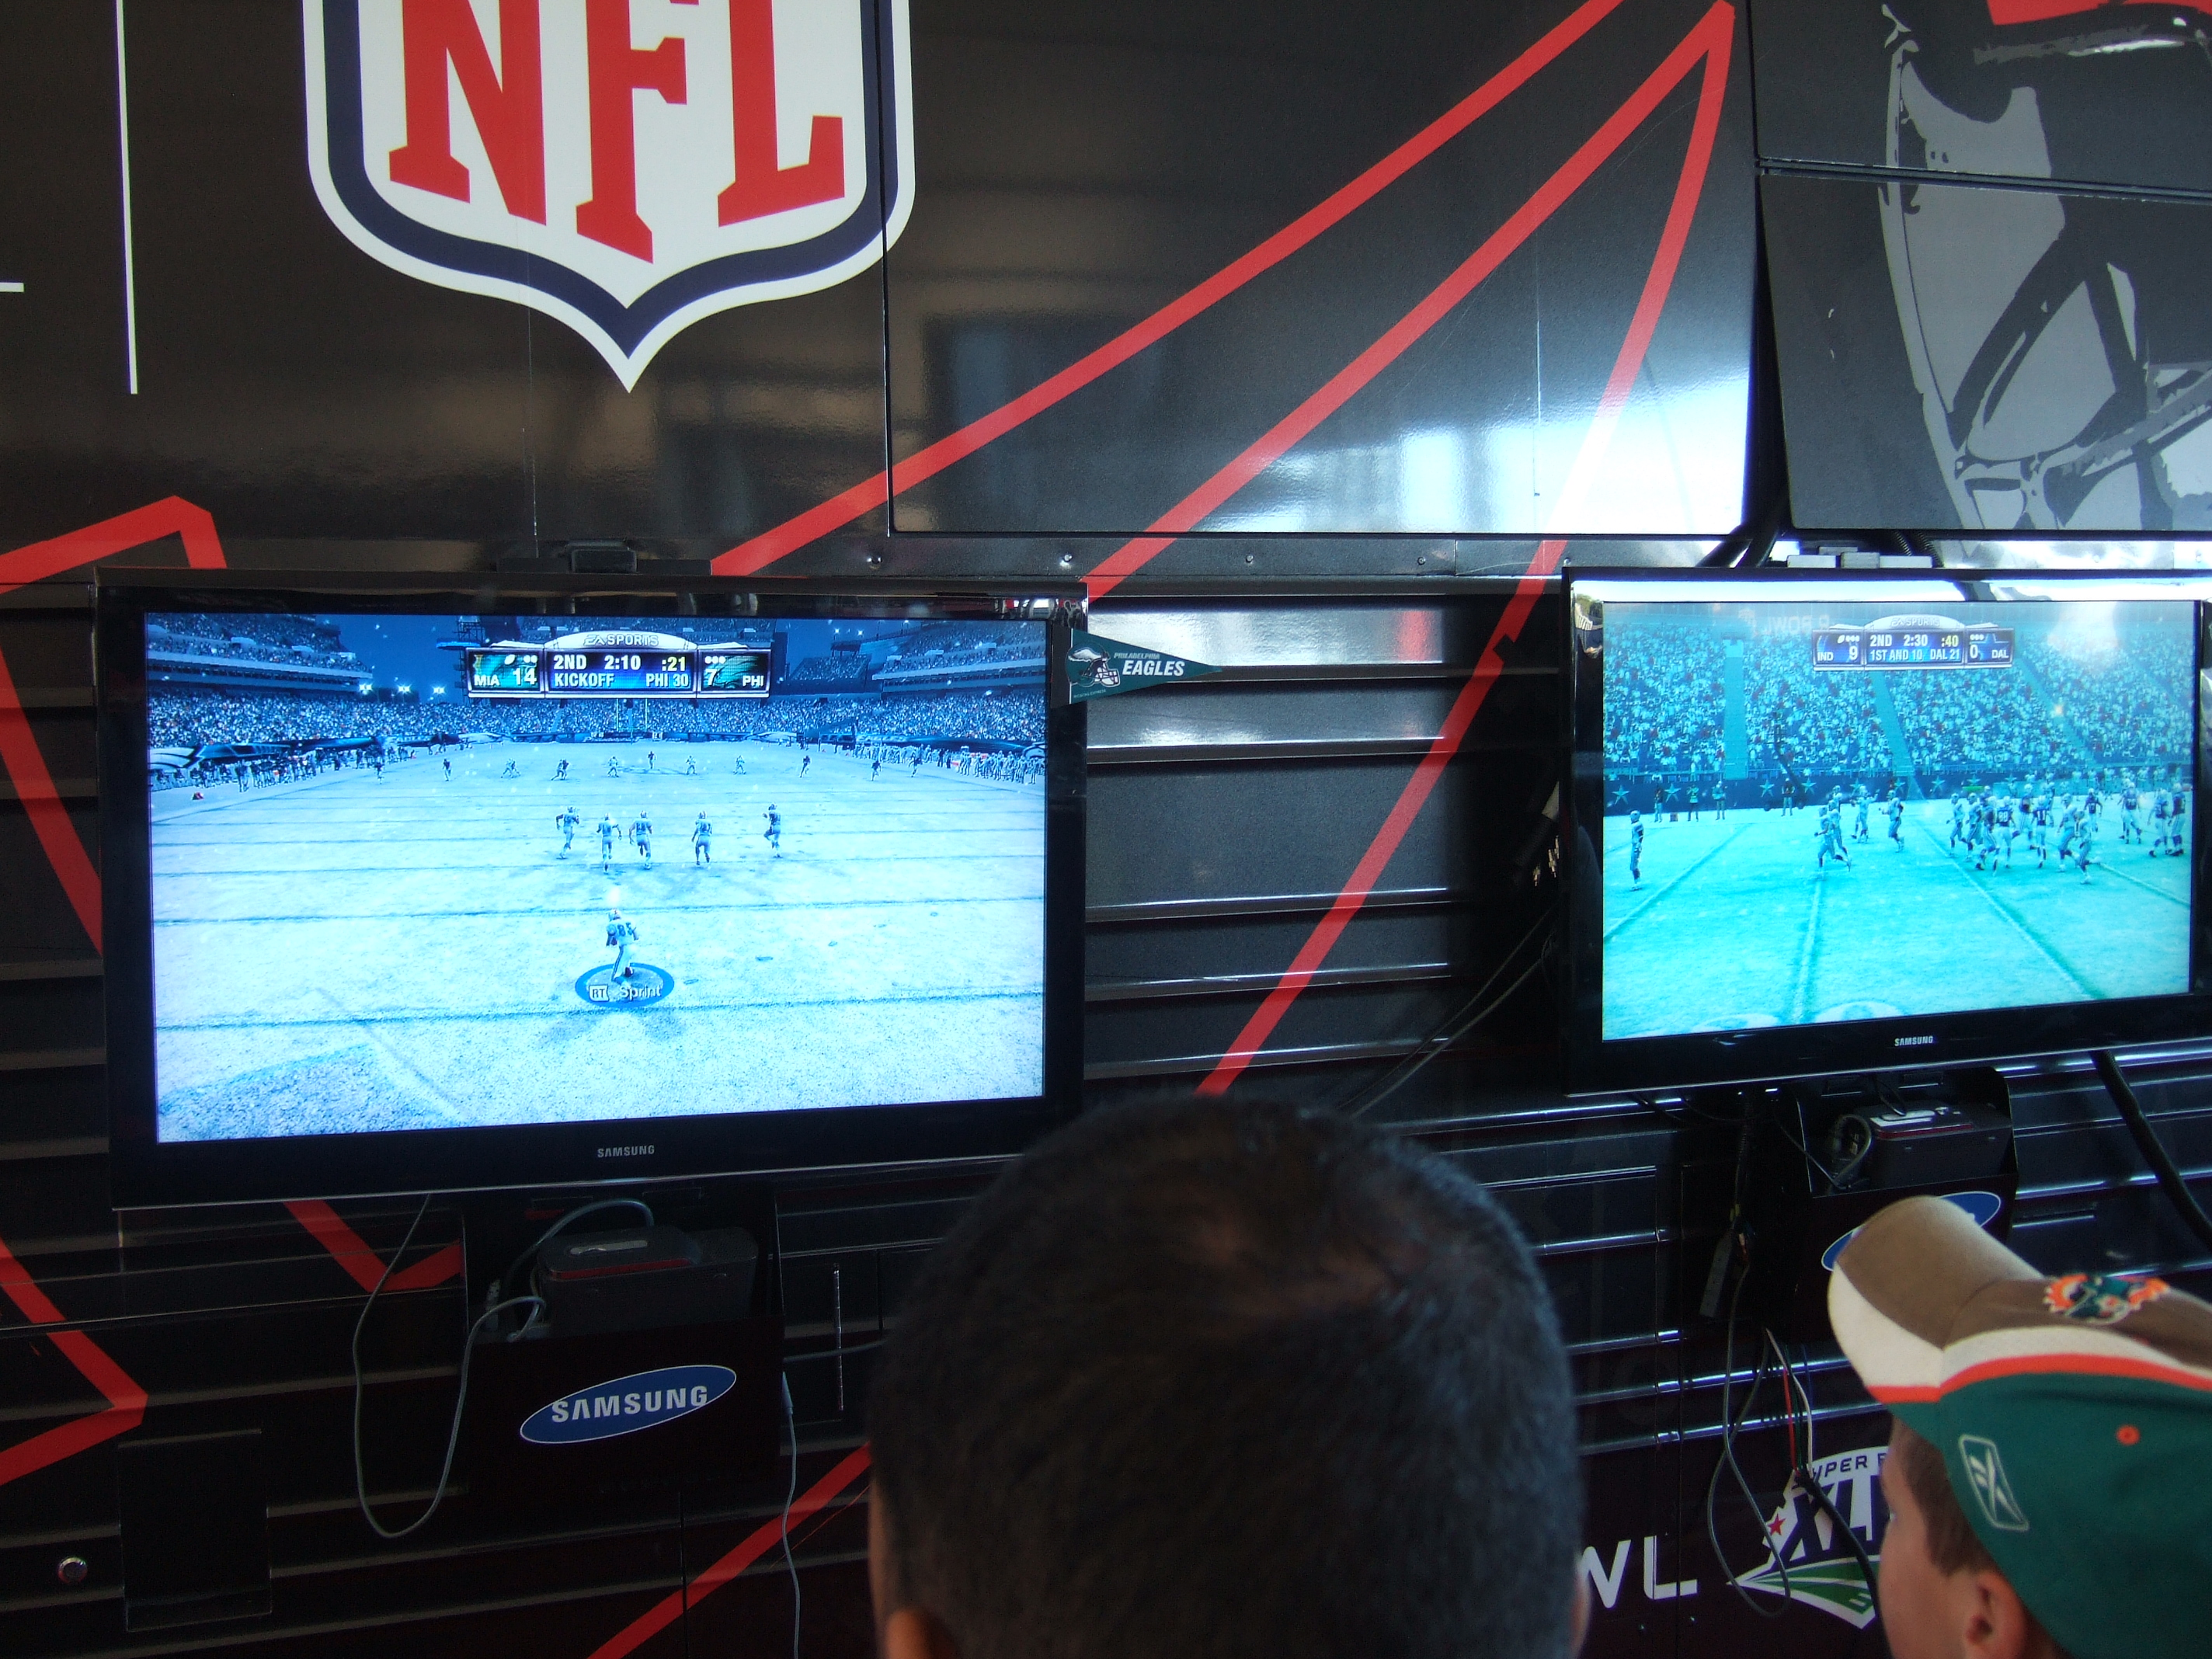 File:Madden NFL - snow game (3785699843).jpg - Wikimedia Commons